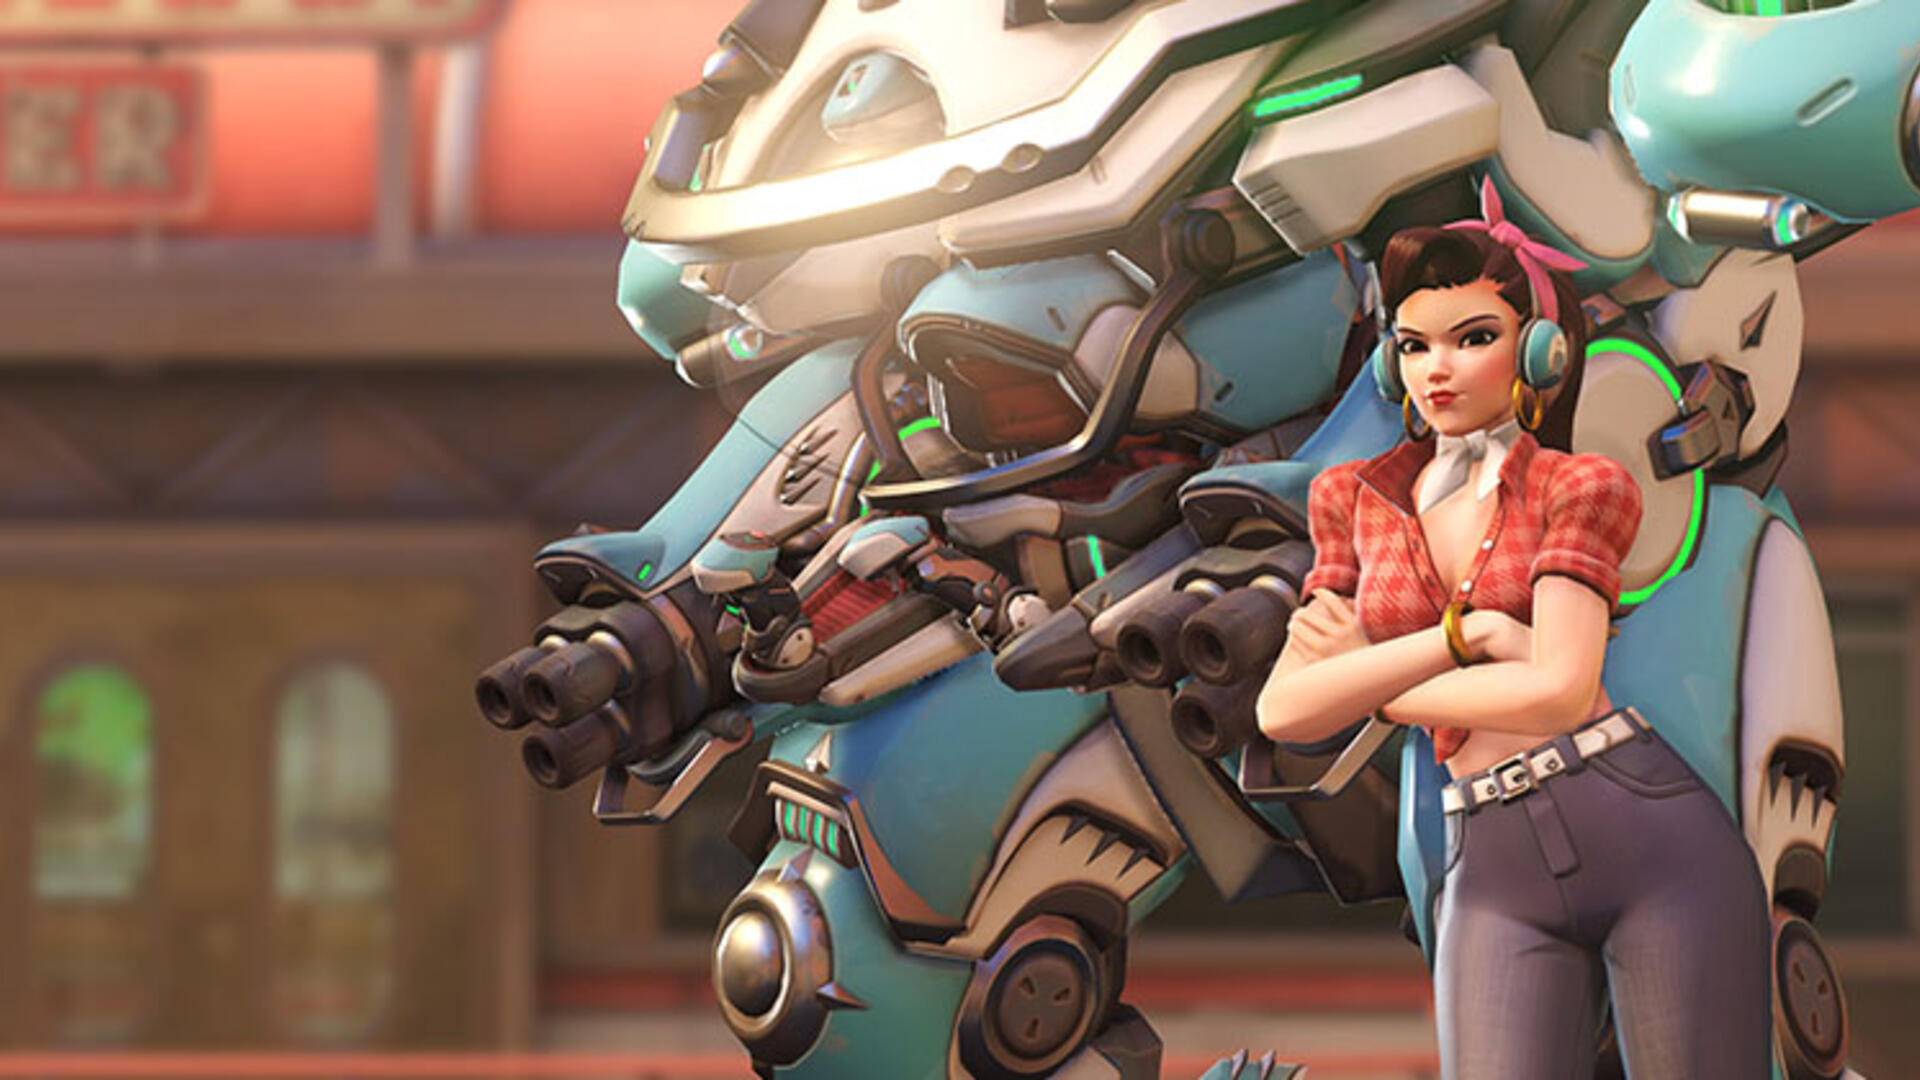 Cancel Your Plans, Overwatch Is Offering Double XP This Weekend